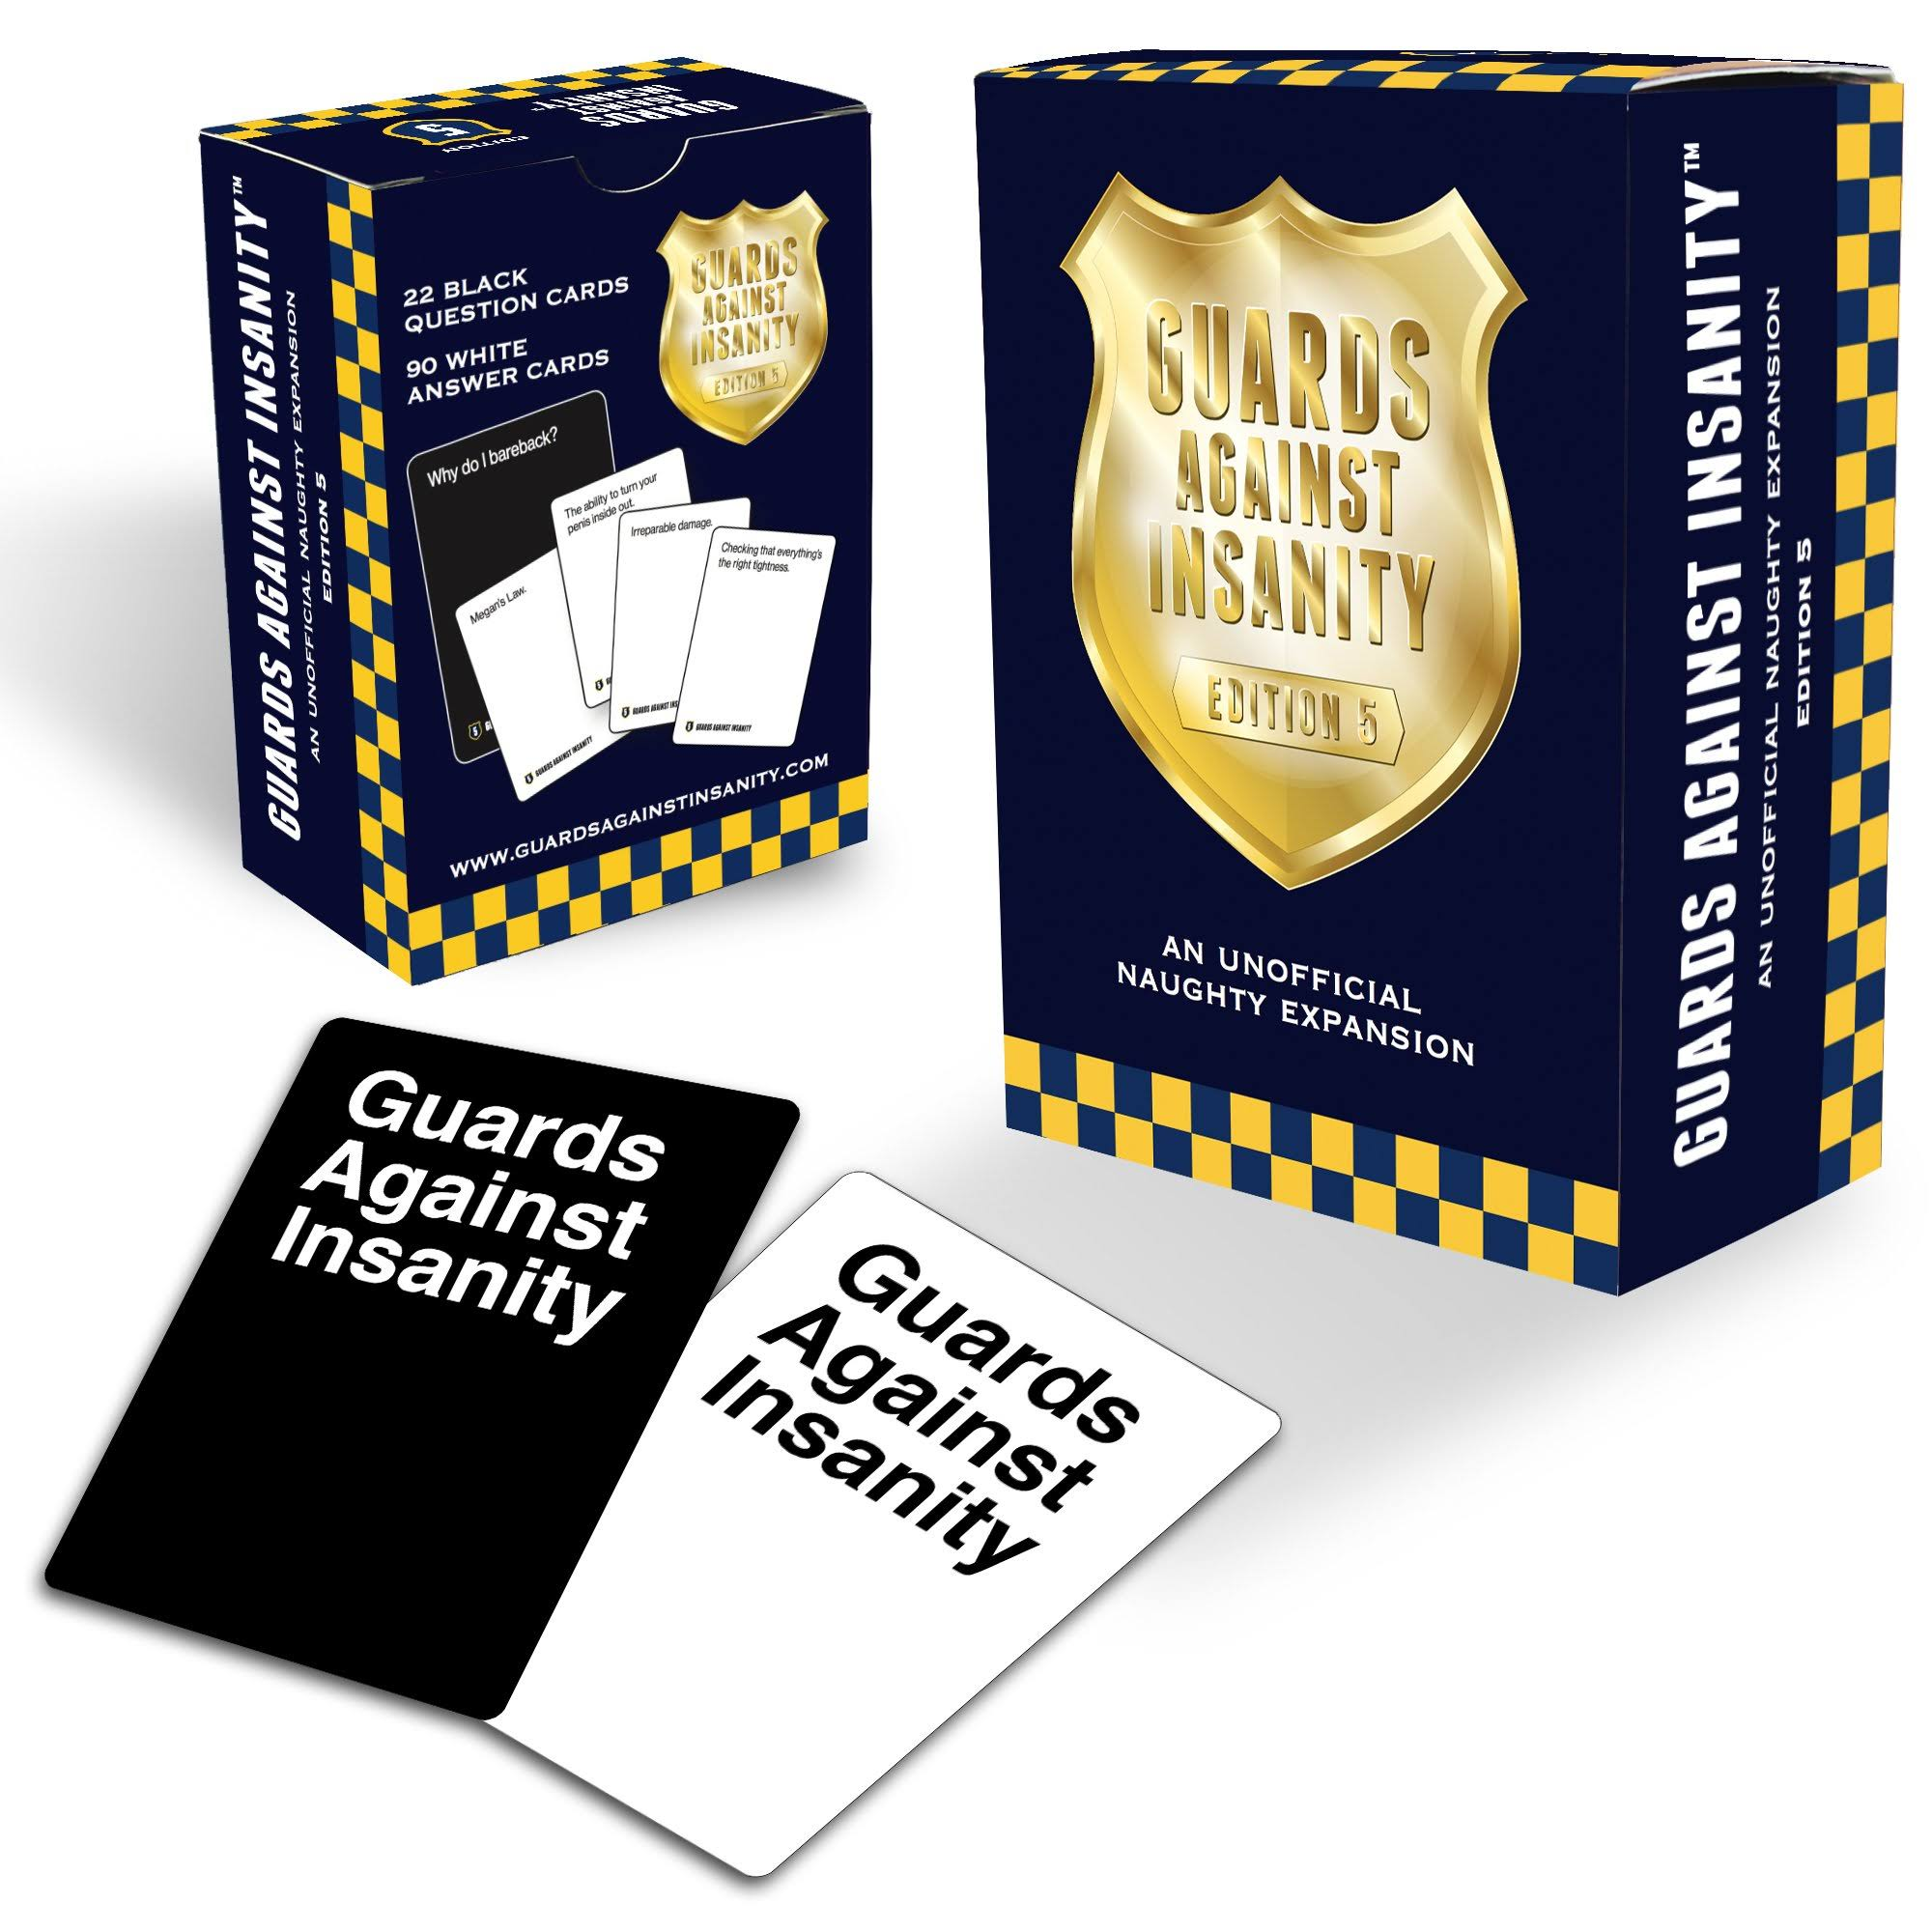 Guards Against Insanity Edition 5: An Unofficial Naughty Expansion Card Game